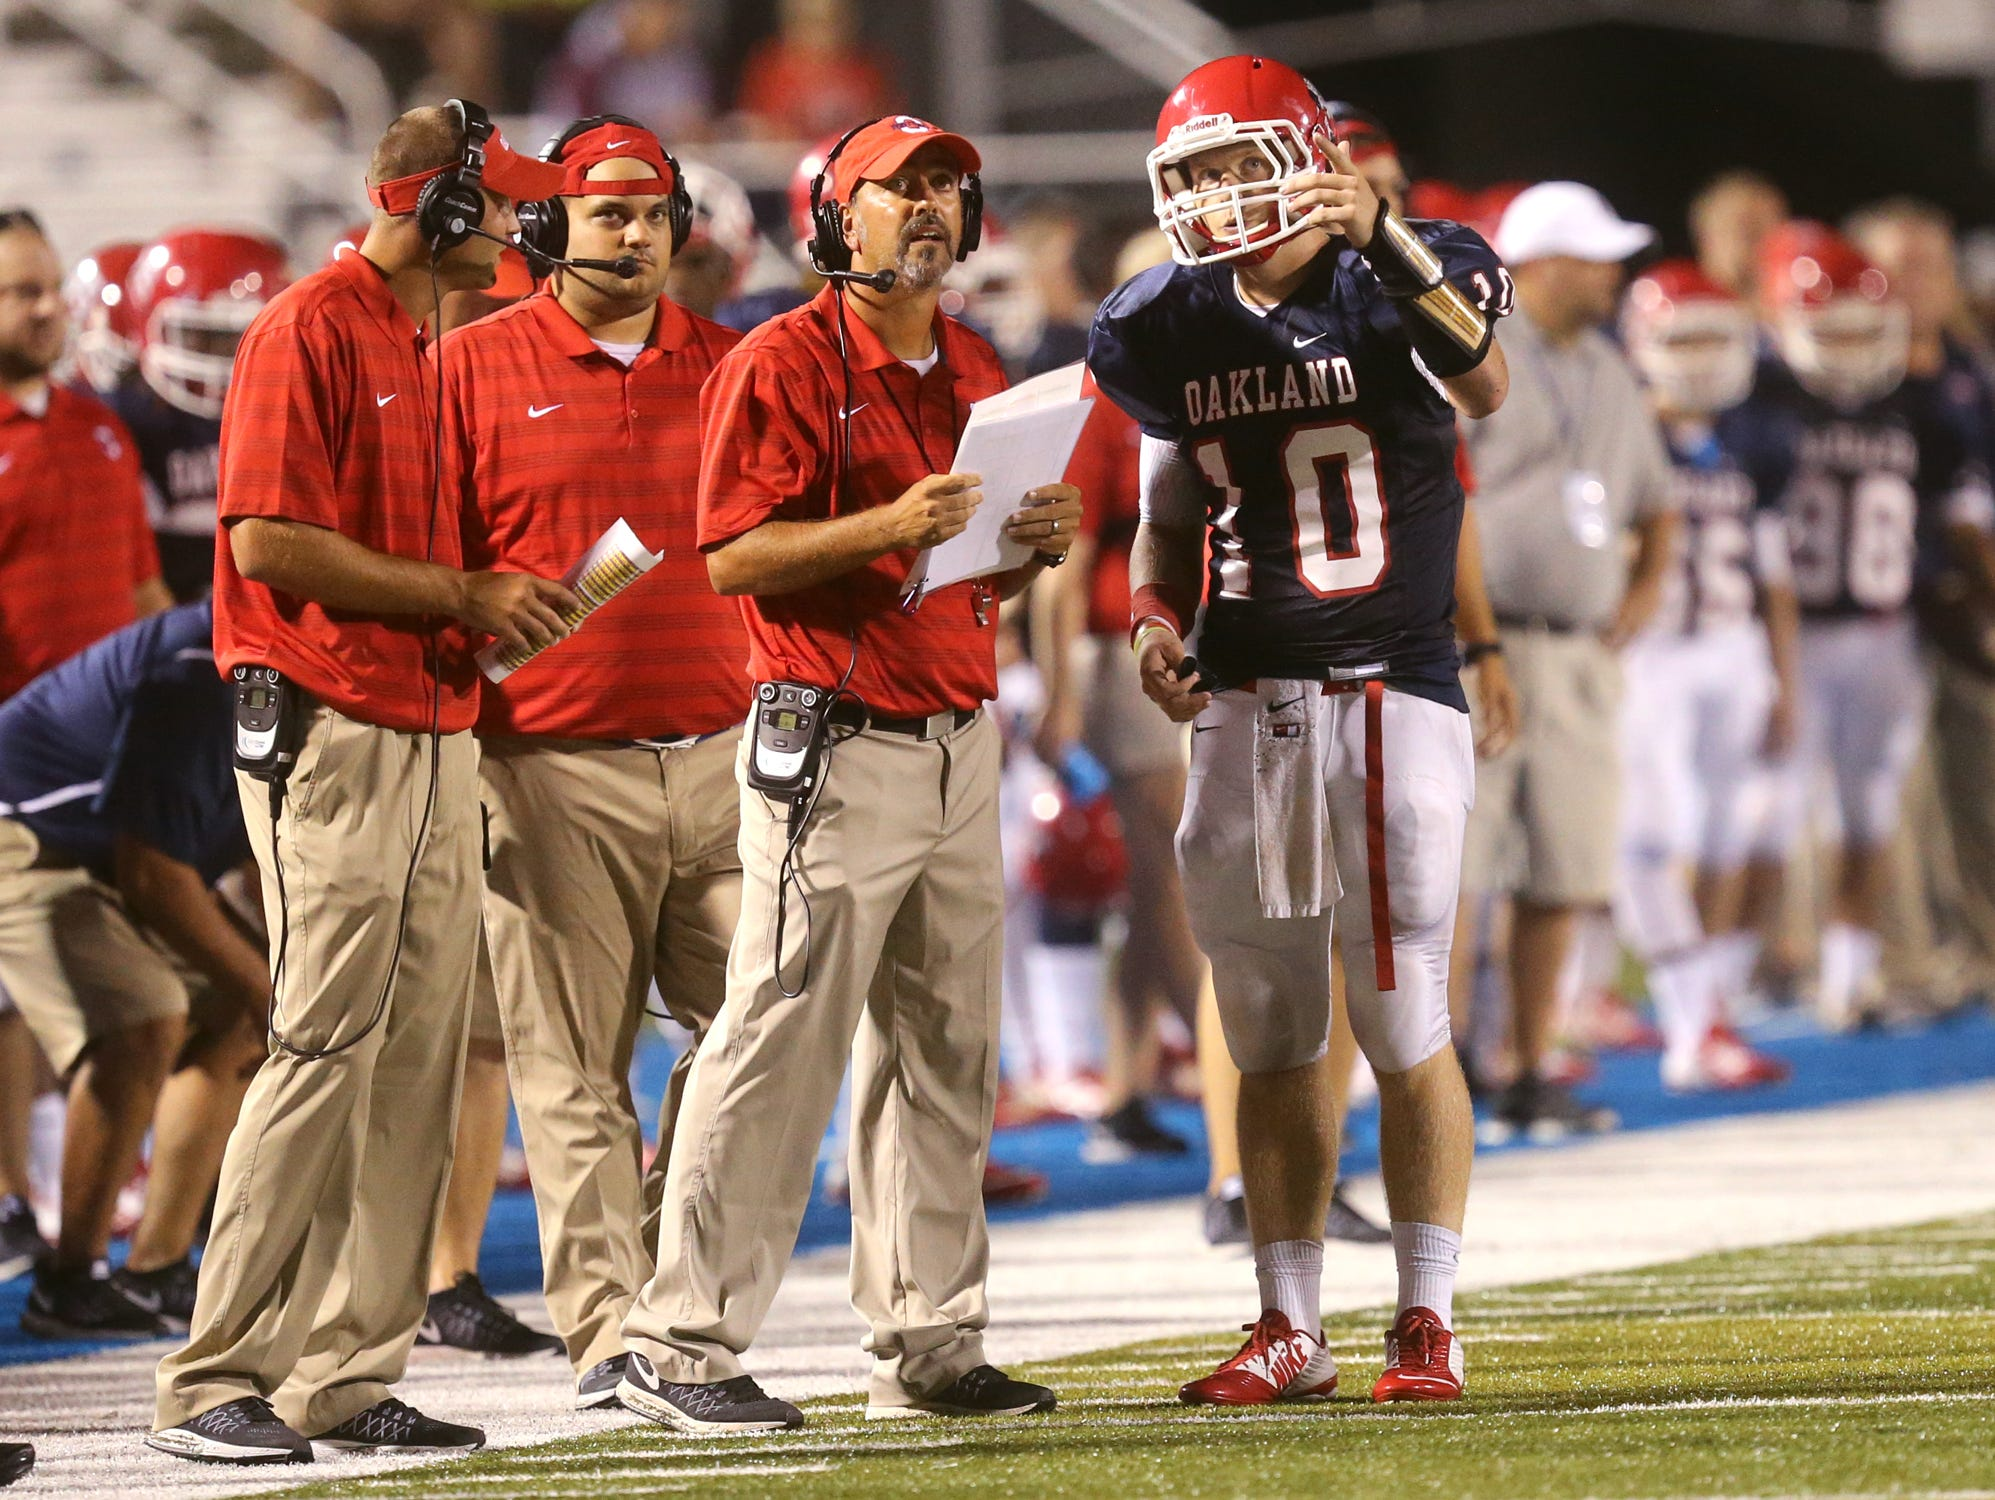 Oakland's quarterback Brendon Matthews (10), talks with the head coach Kevin Creasy during the game against Hoover at the Middle Tennessee Classic at MTSU's Floyd Stadium, on Saturday, Aug. 22, 2015.